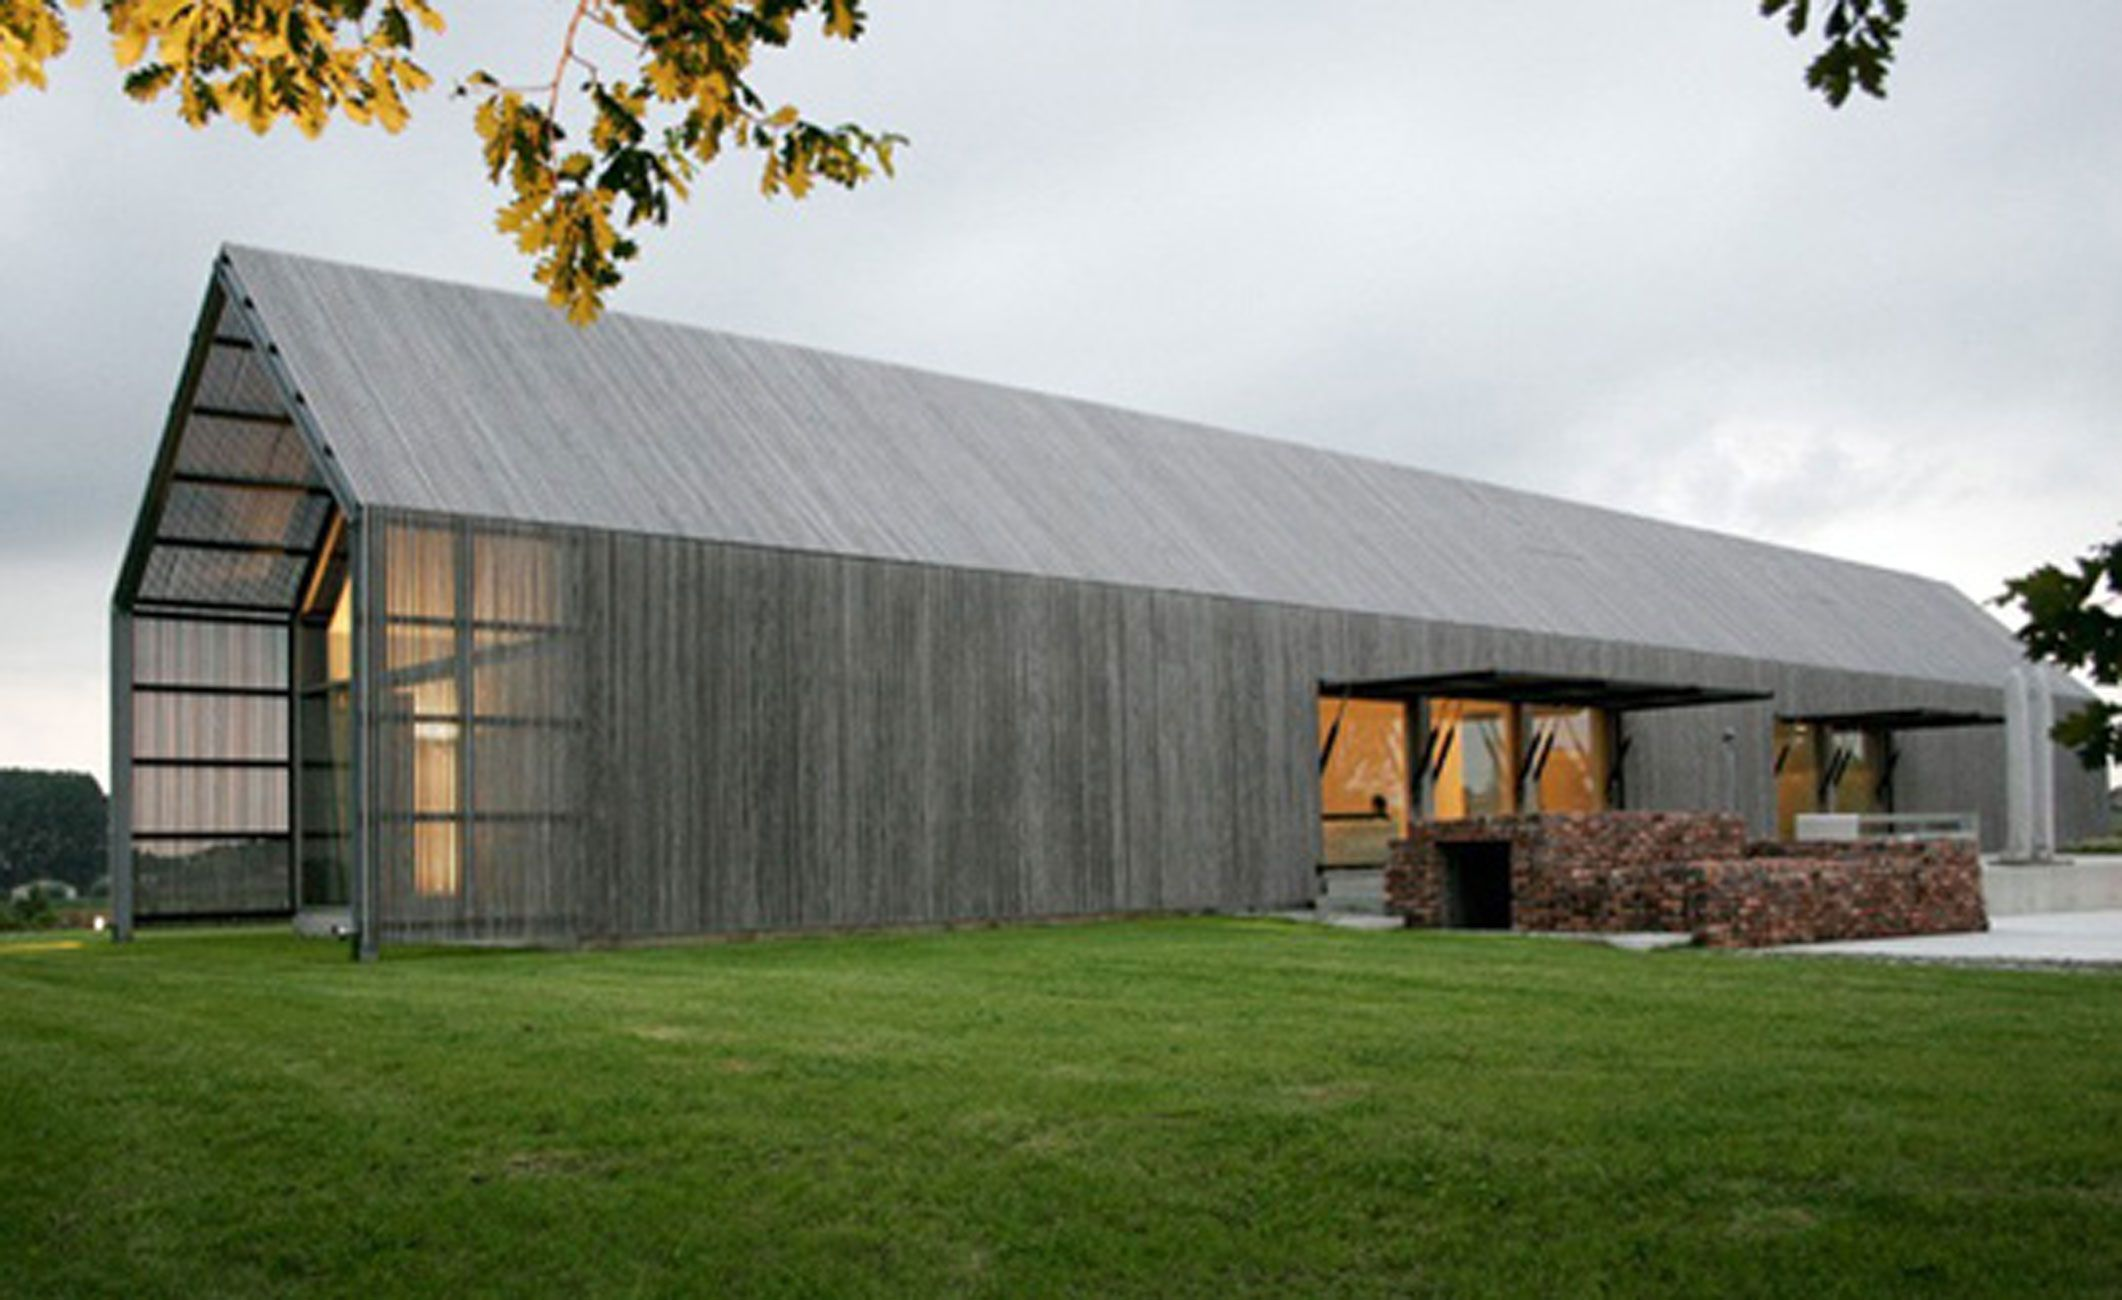 Stunning Modern Barndominium Plans For A Small Family Barn Style